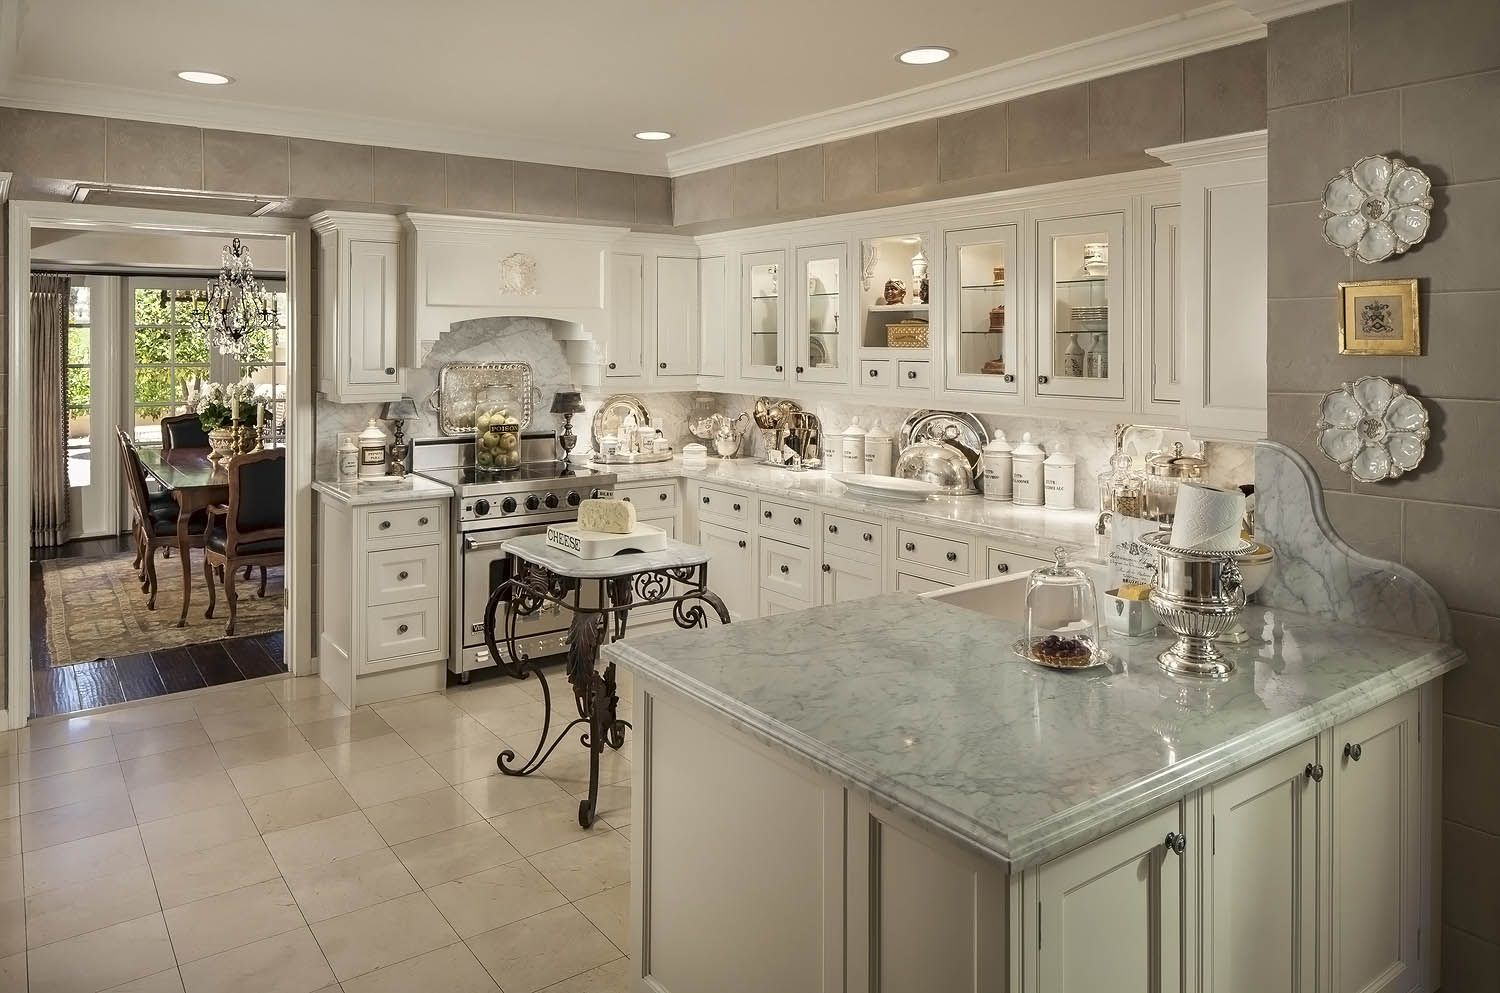 pin by christopher coffin on christopher k coffin design french country kitchen french on kitchen remodel french country id=76841